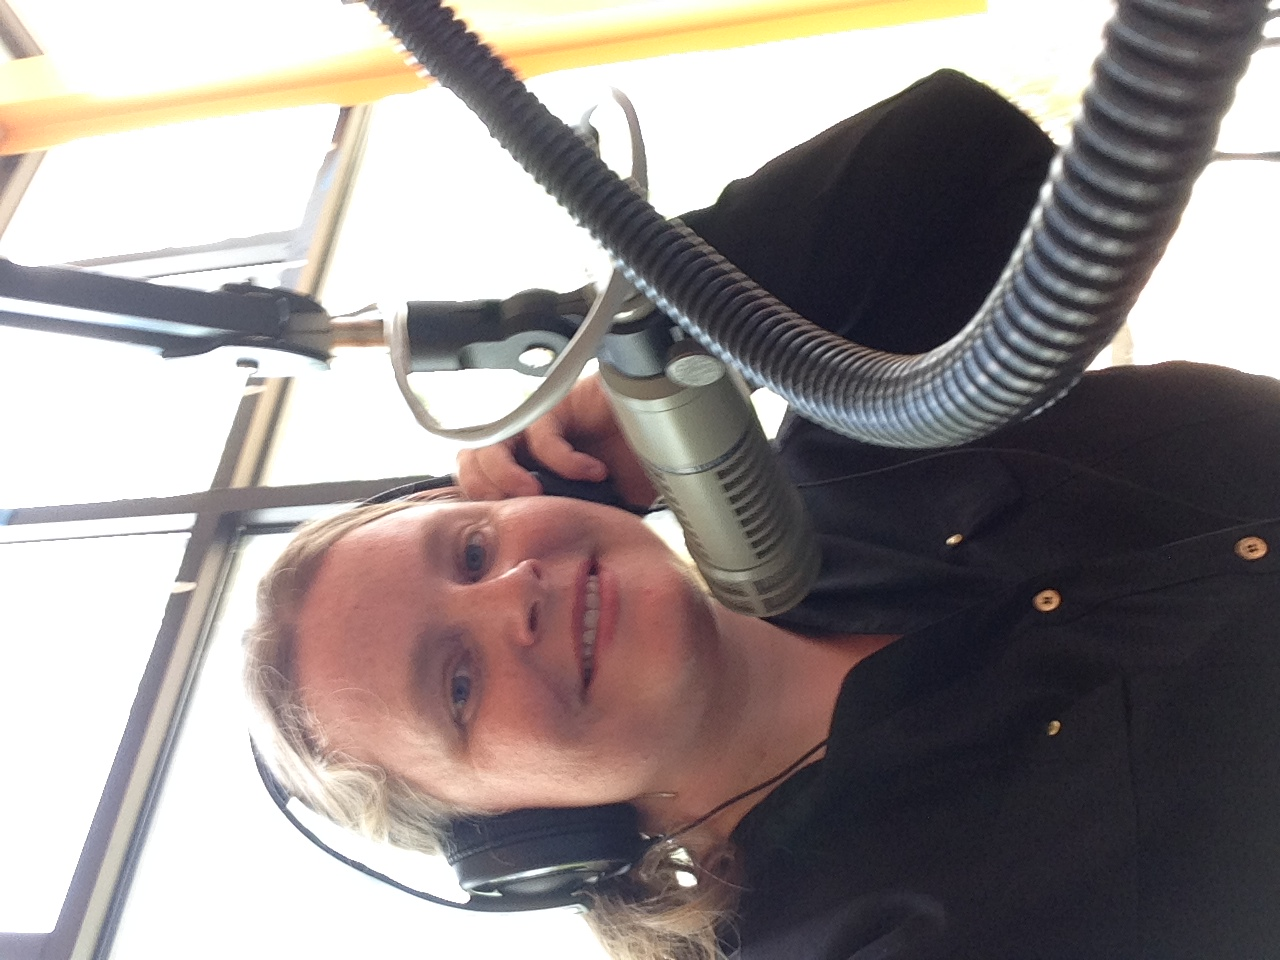 Virginia Ingram on WCOM in Carrboro.